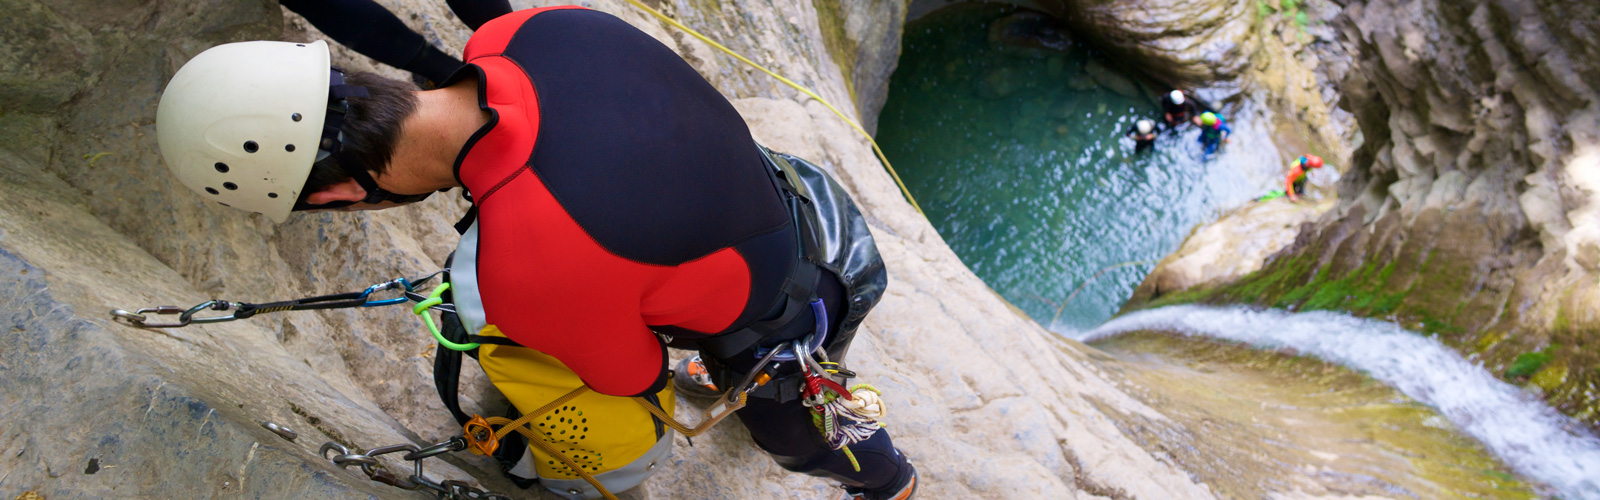 Canyoning in the Blue Mountains, Australia